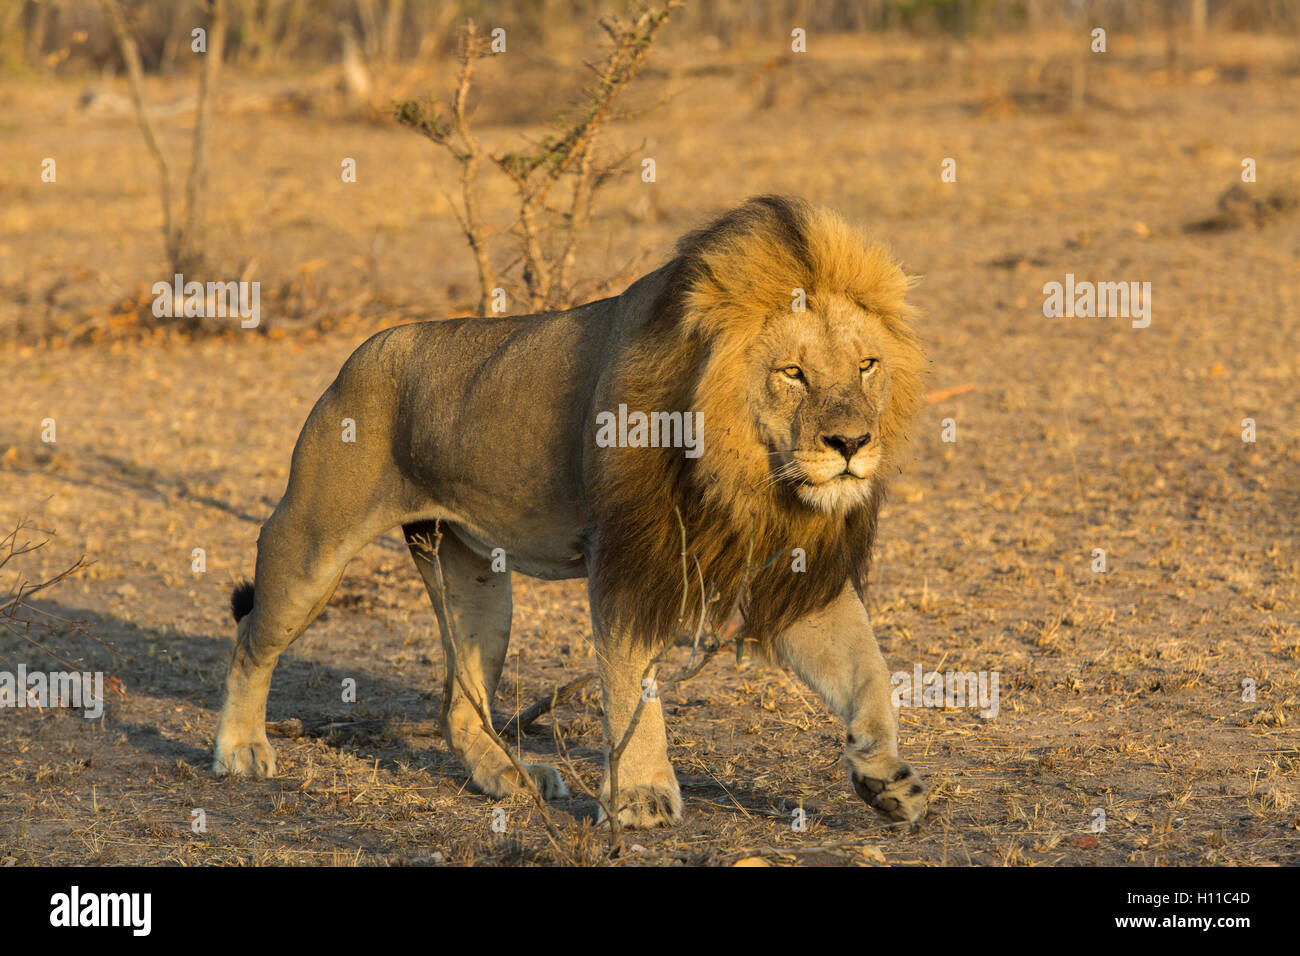 Large male male lion (Panthera leo) on the move in warm lighting - Stock Image